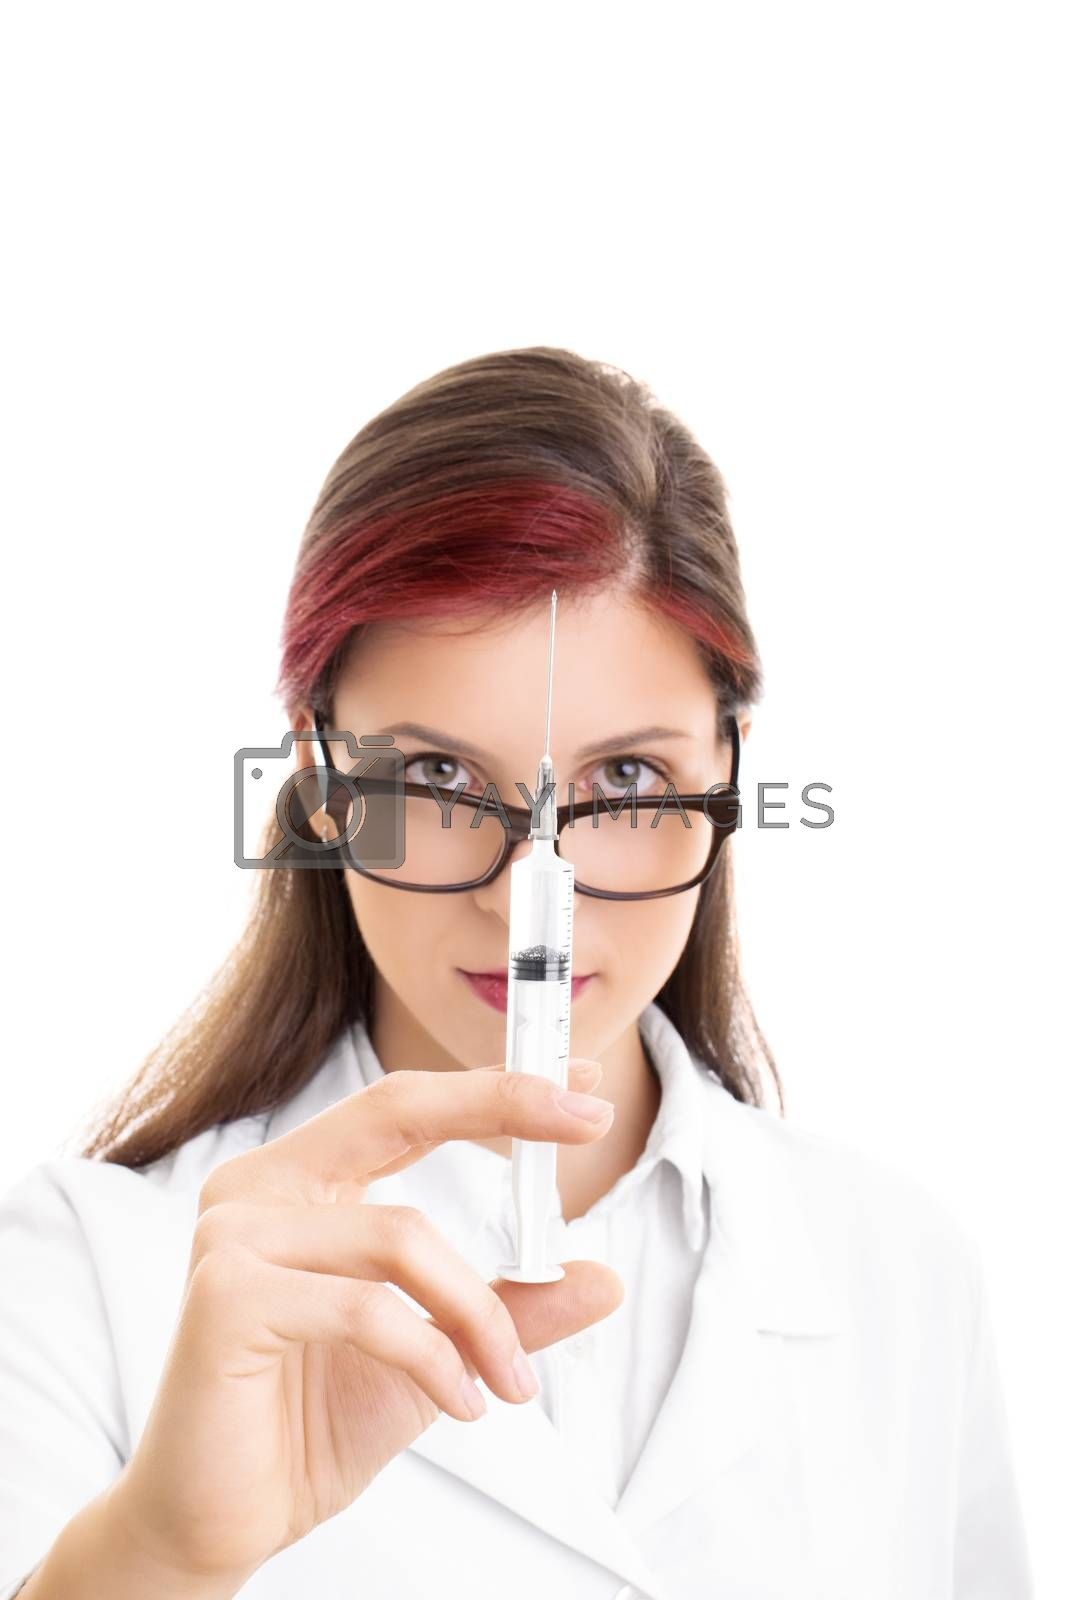 Close up shot of a young female doctor with glasses holding a syringe with needle, isolated on white background.